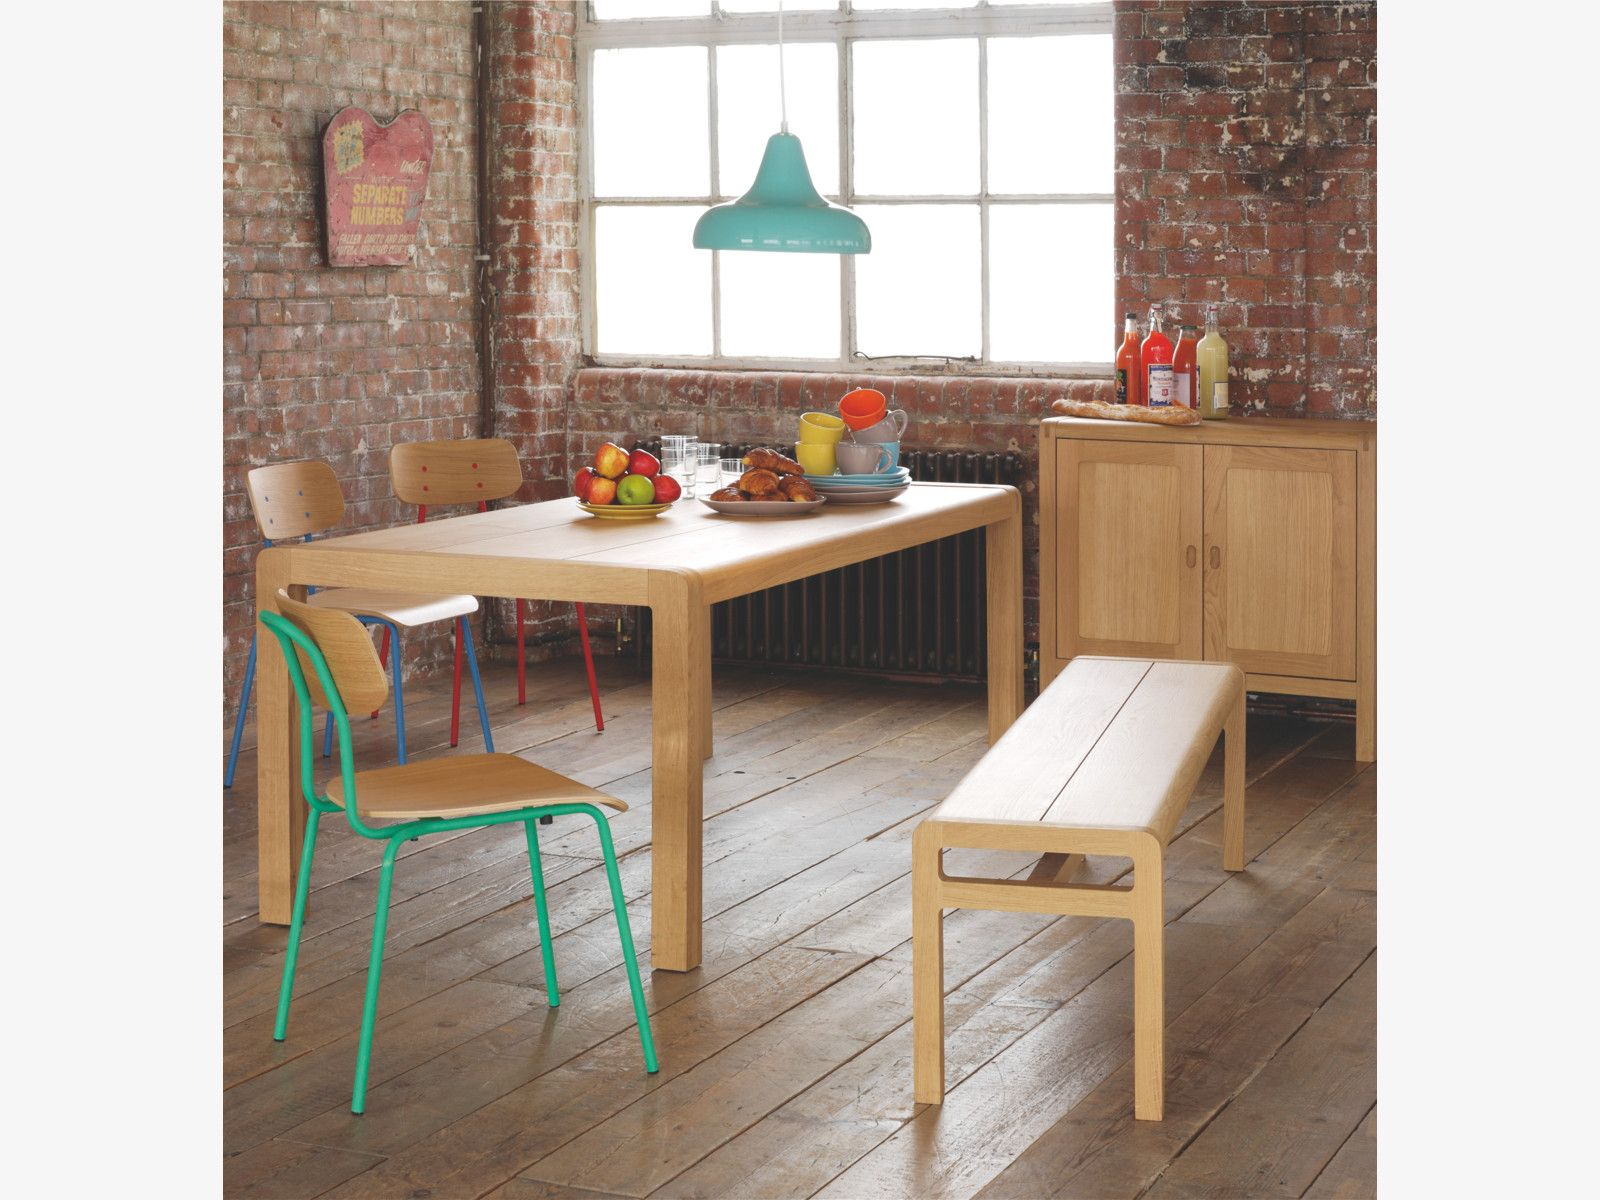 Habitat Small dining Woods and Dining bench